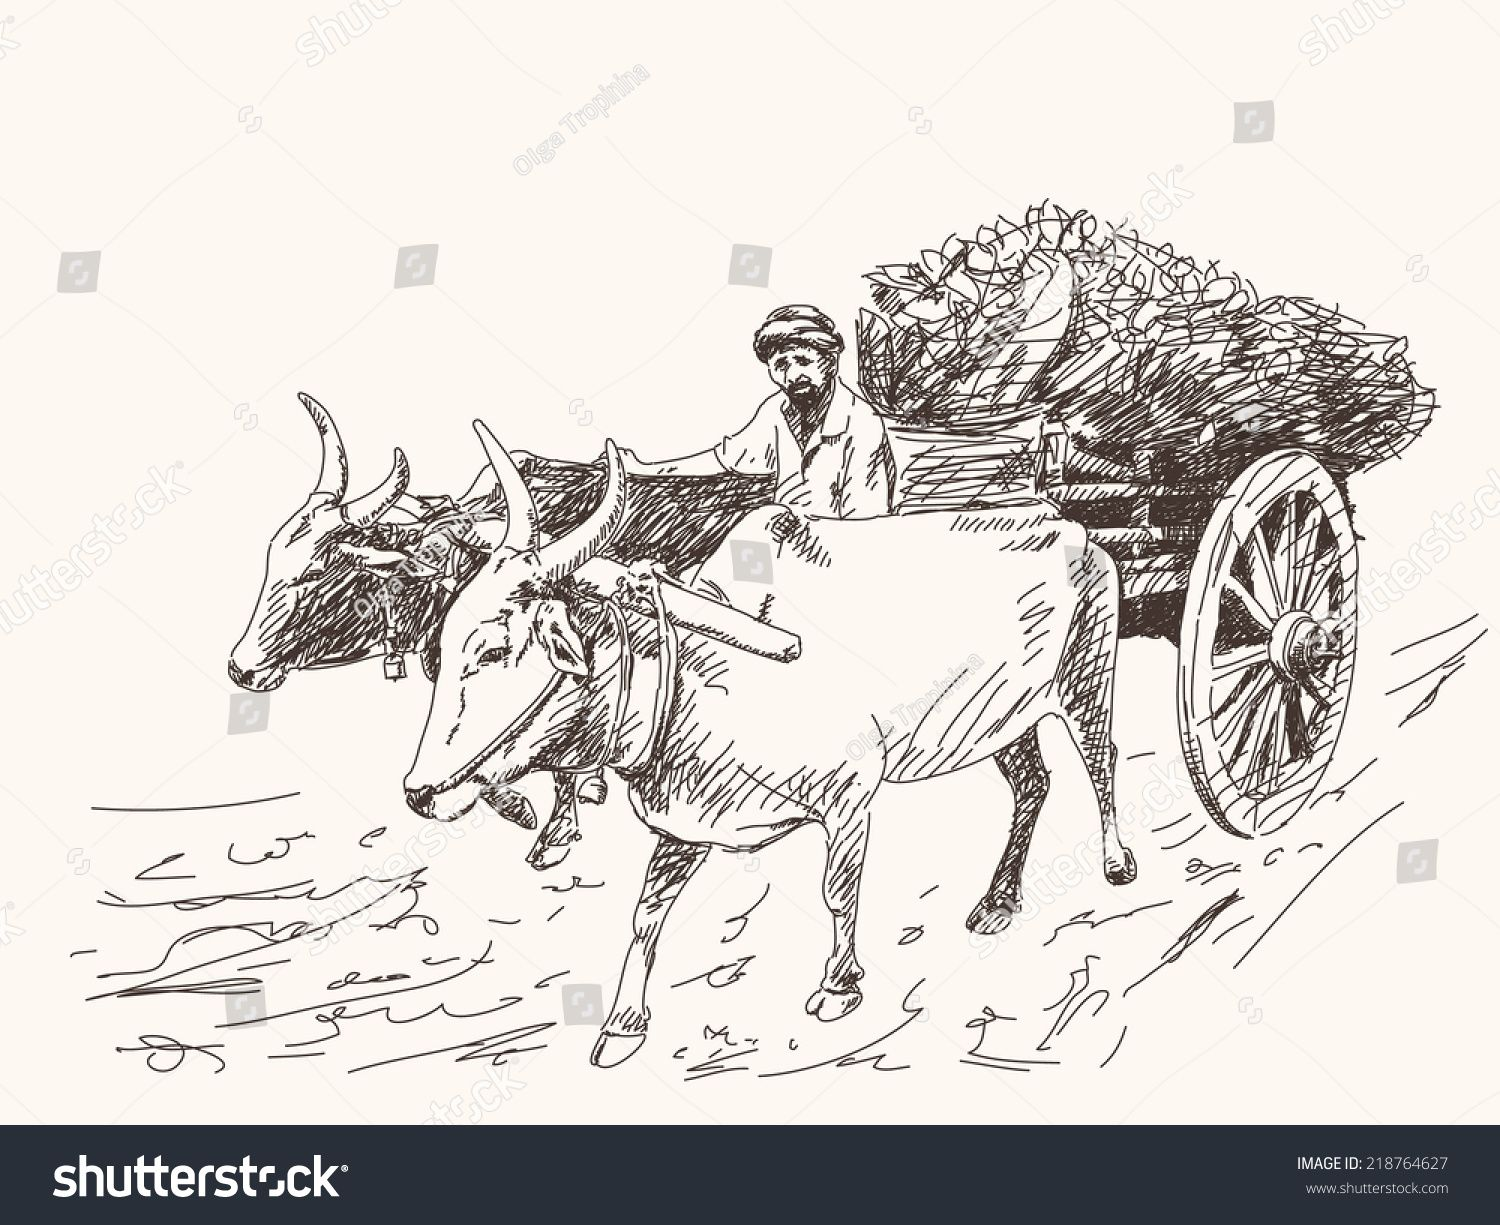 Oxcart clipart svg black and white library Asian farmer riding on ox cart sketch Hand drawn illustration ... svg black and white library